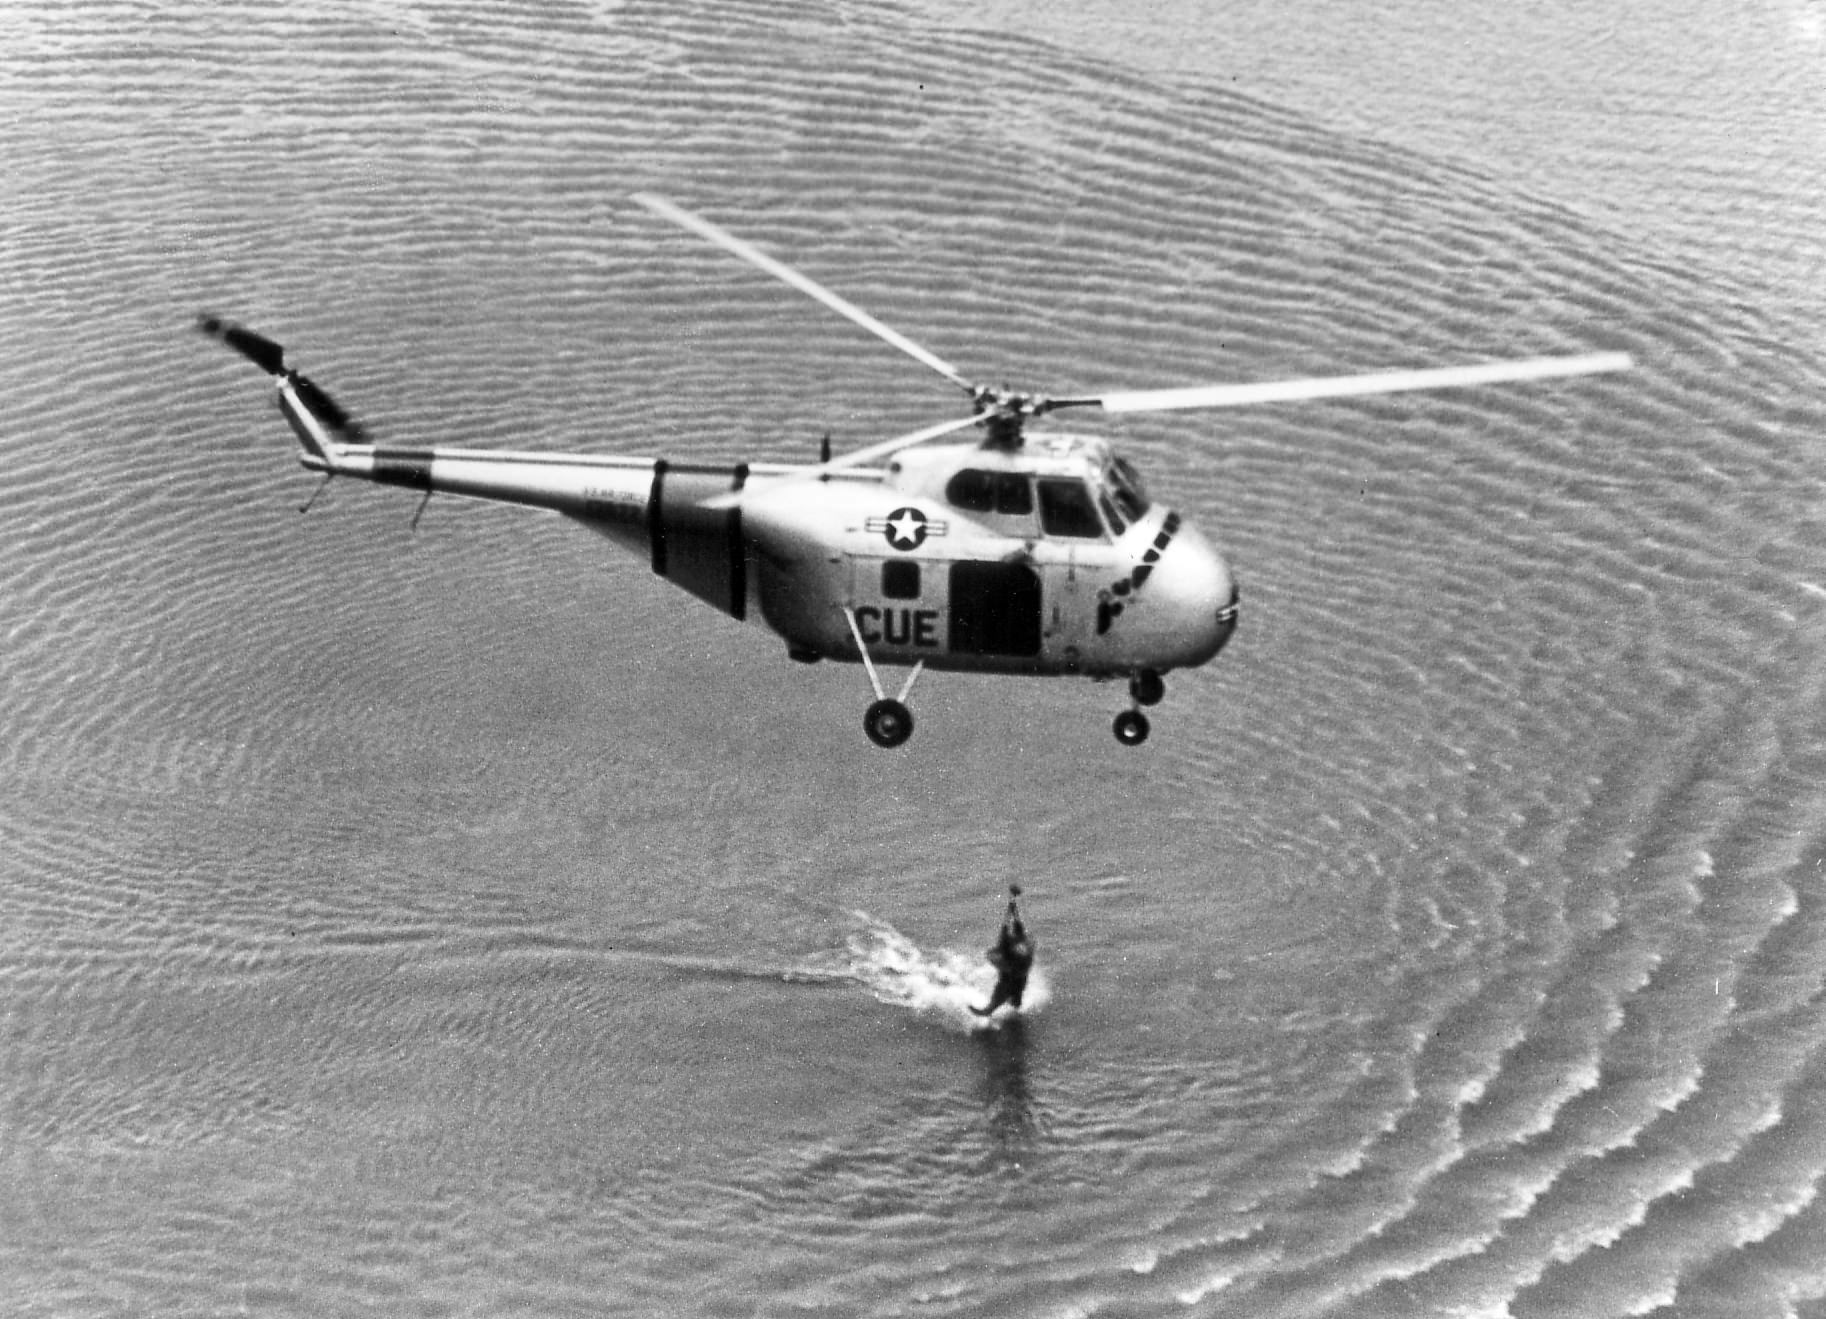 Ebay Motors Motorcycles >> 1961 U.S. Air Force Training Film: Helicopter Rescue ...